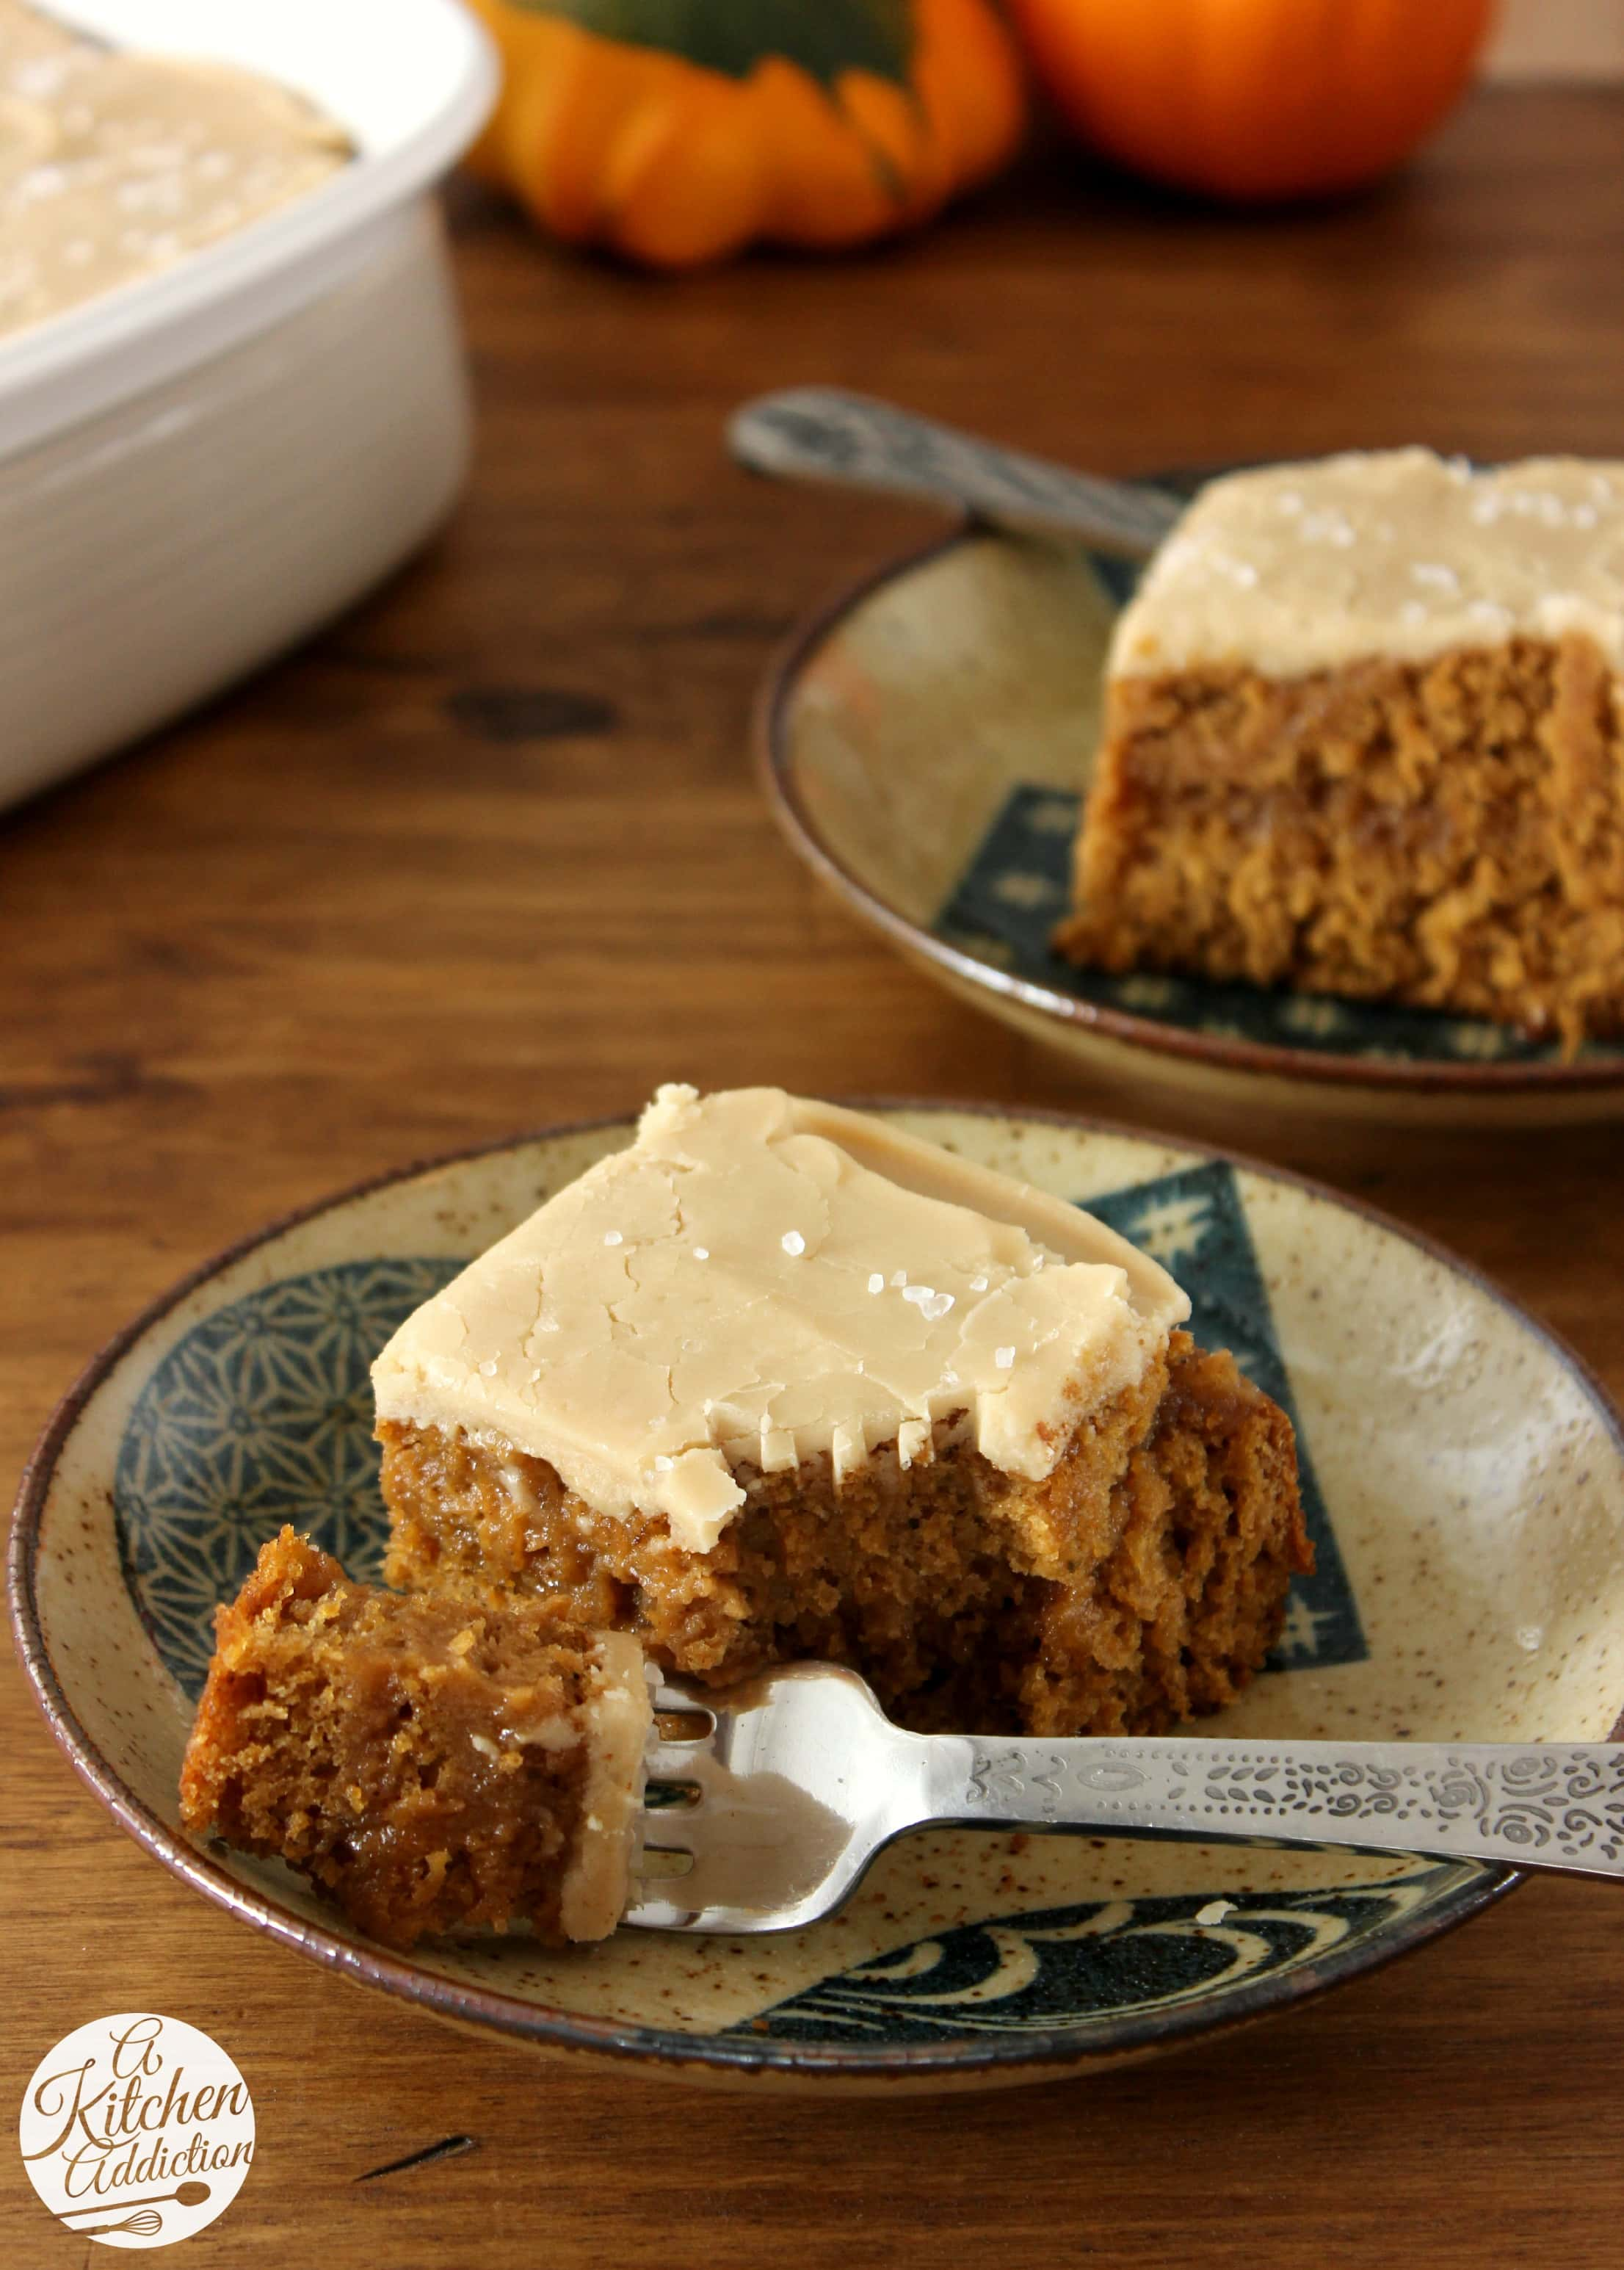 Salted caramel pumpkin cake a kitchen addiction for A kitchen addiction